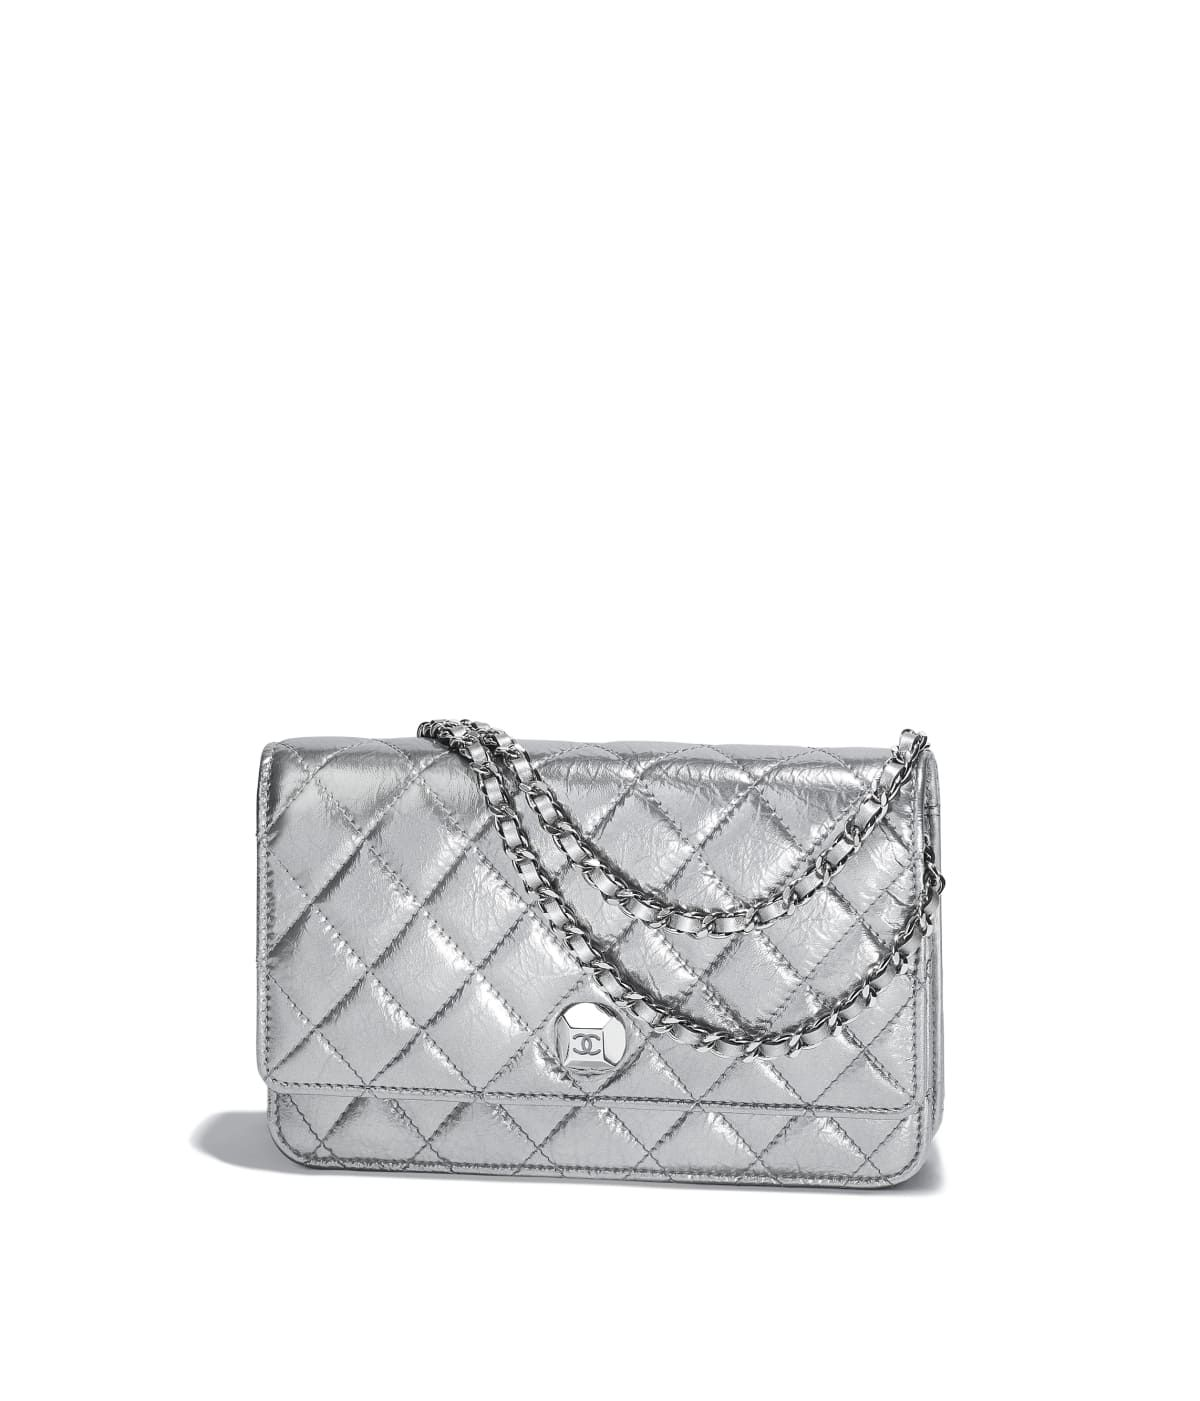 0fafb5d79fd84 Small leather goods of the Spring-Summer 2018 CHANEL Fashion collection :  Wallet on Chain, metallic aged lambskin & silver-tone metal, silver on the  CHANEL ...